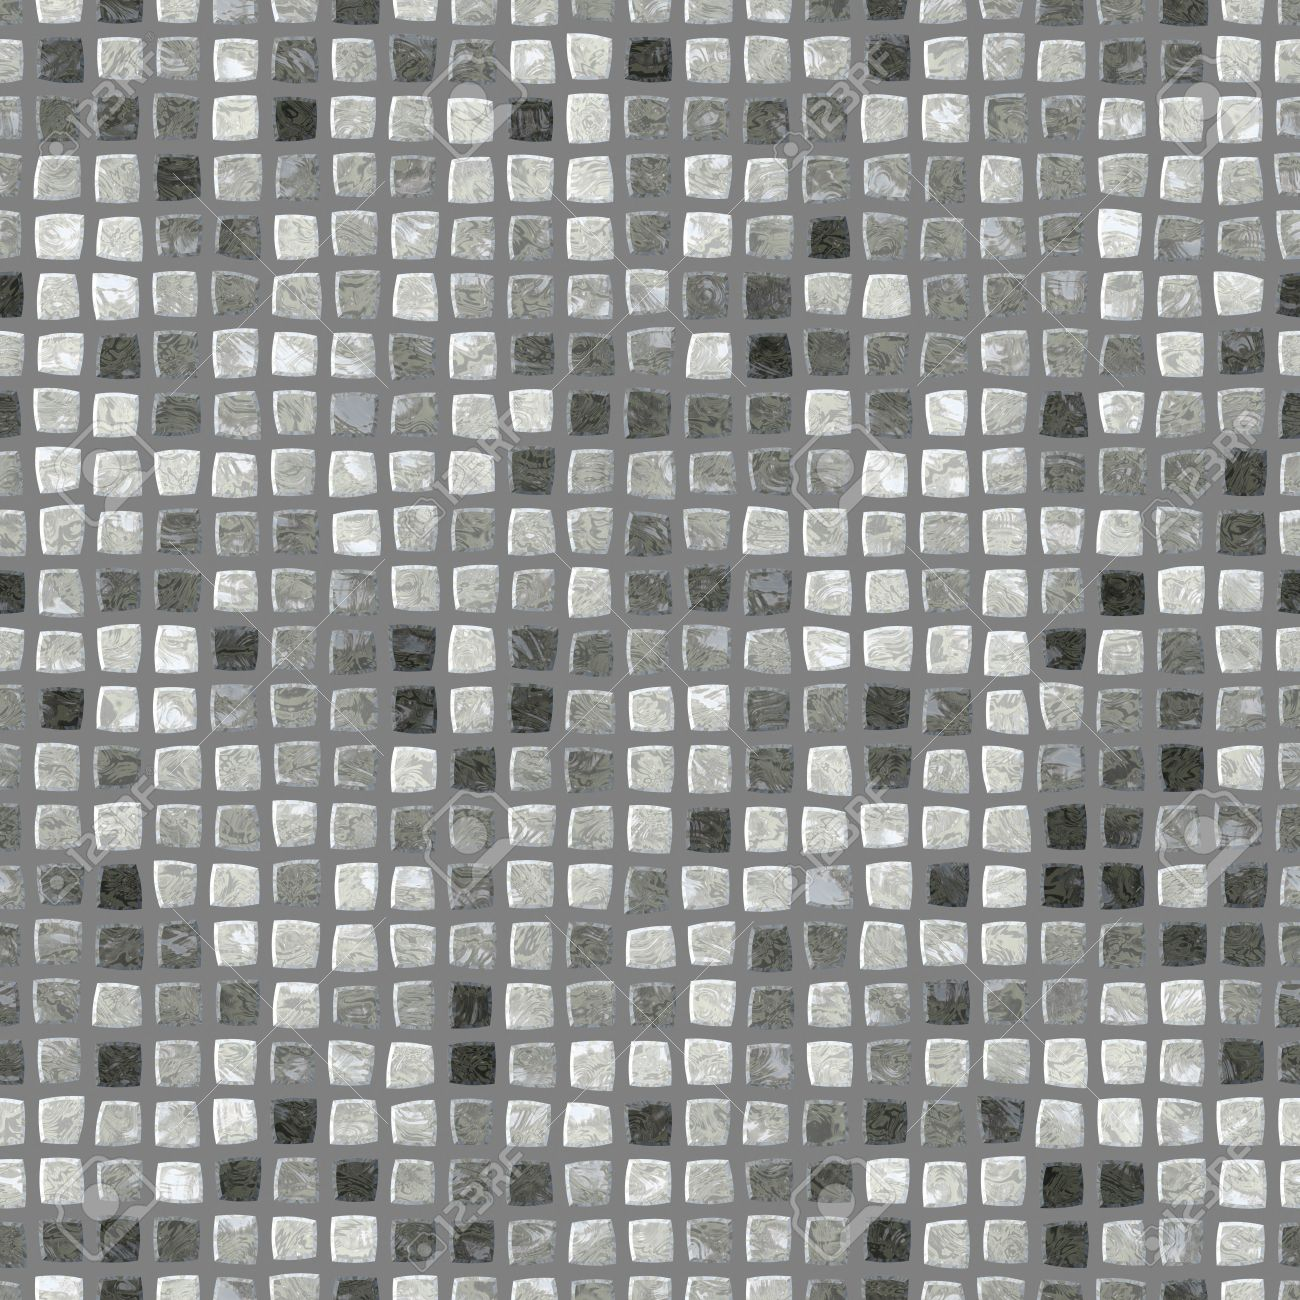 Black White Grey Retro Mosaic Pattern Seamless Digitally Rendered